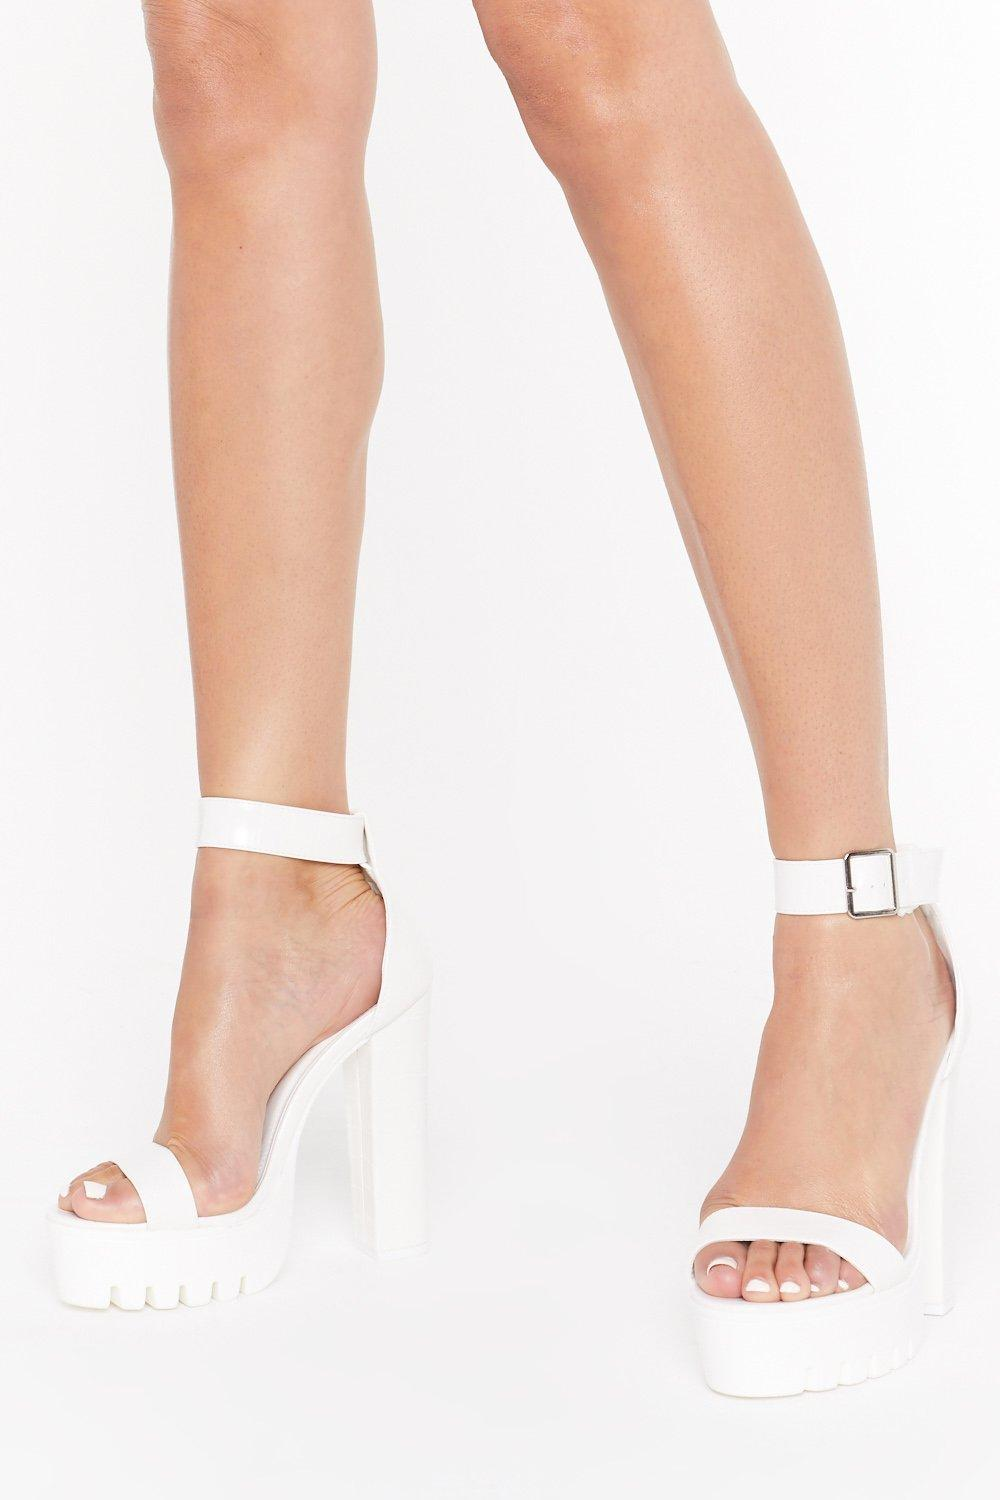 Livin' The Croc Star Life Faux Leather Platform Heels by Nasty Gal